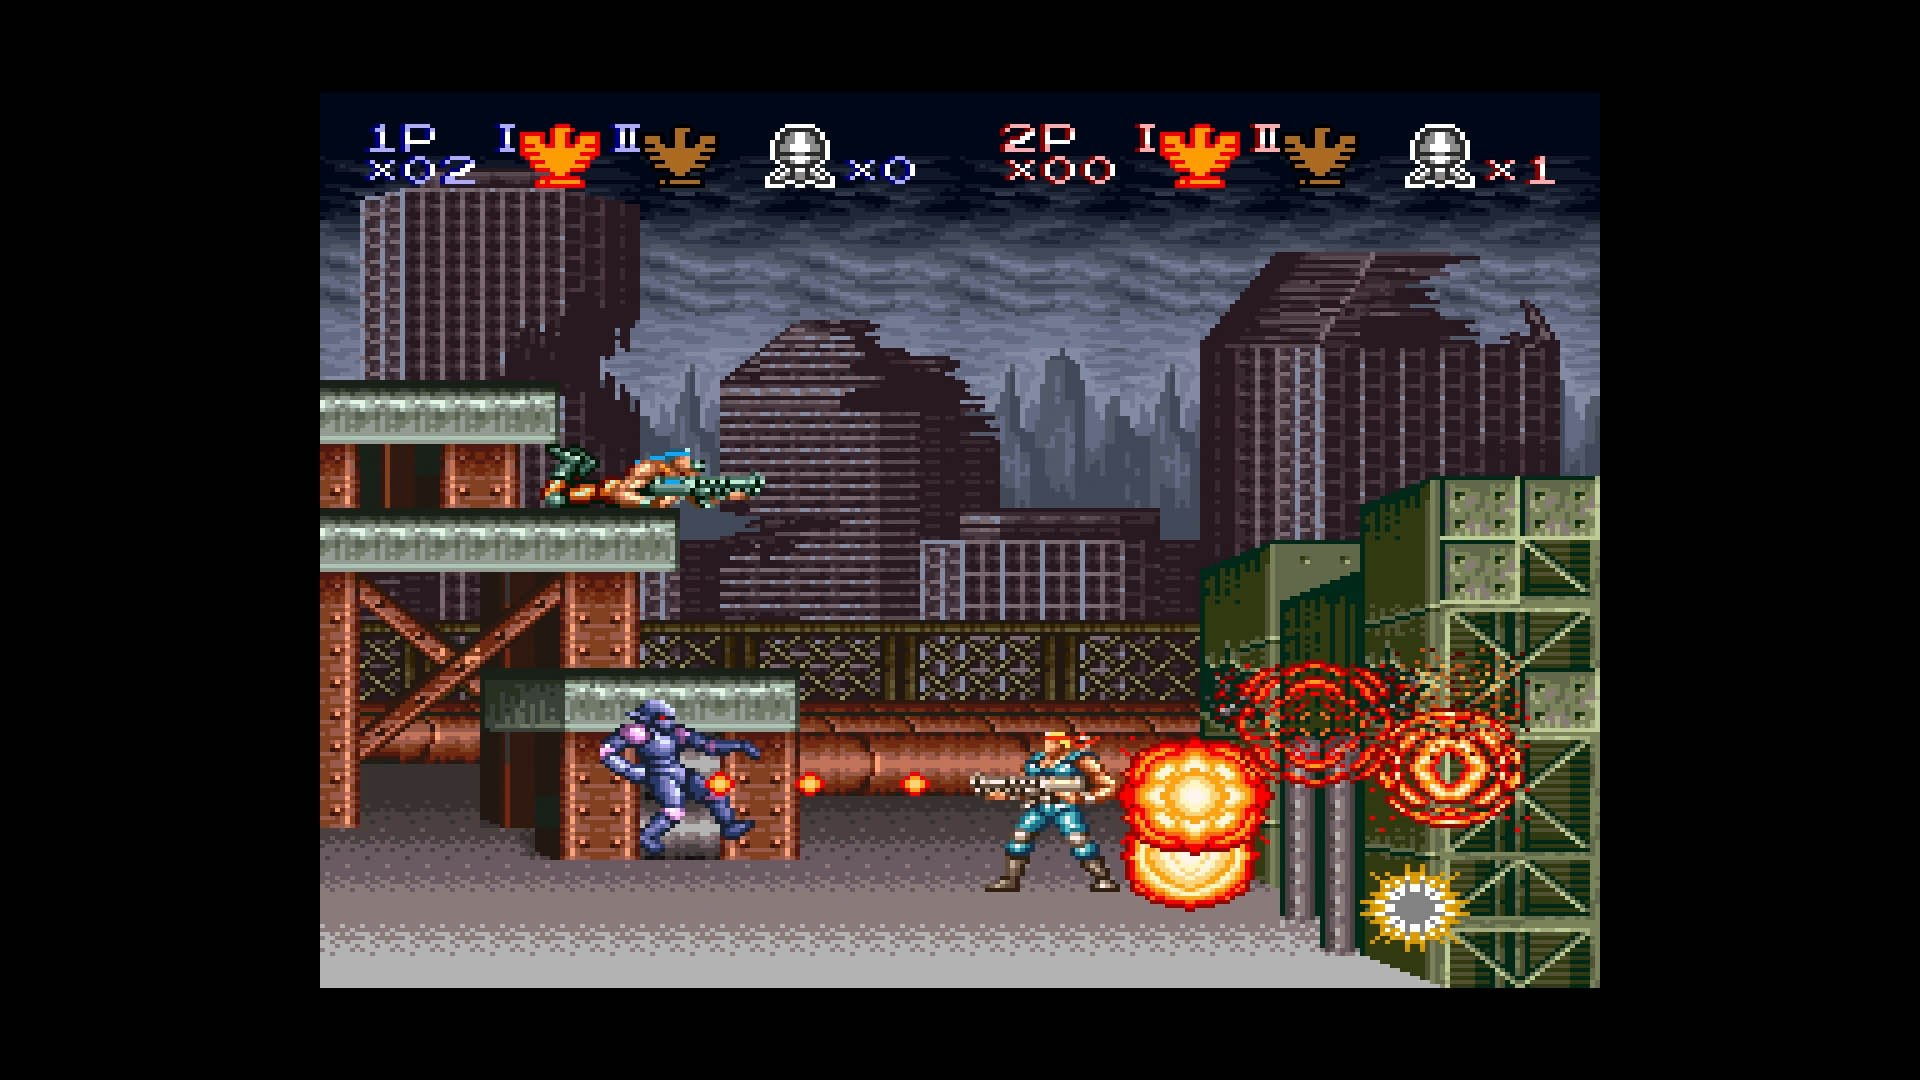 Contra III: The Alien Wars was the franchise debut on the SNES.